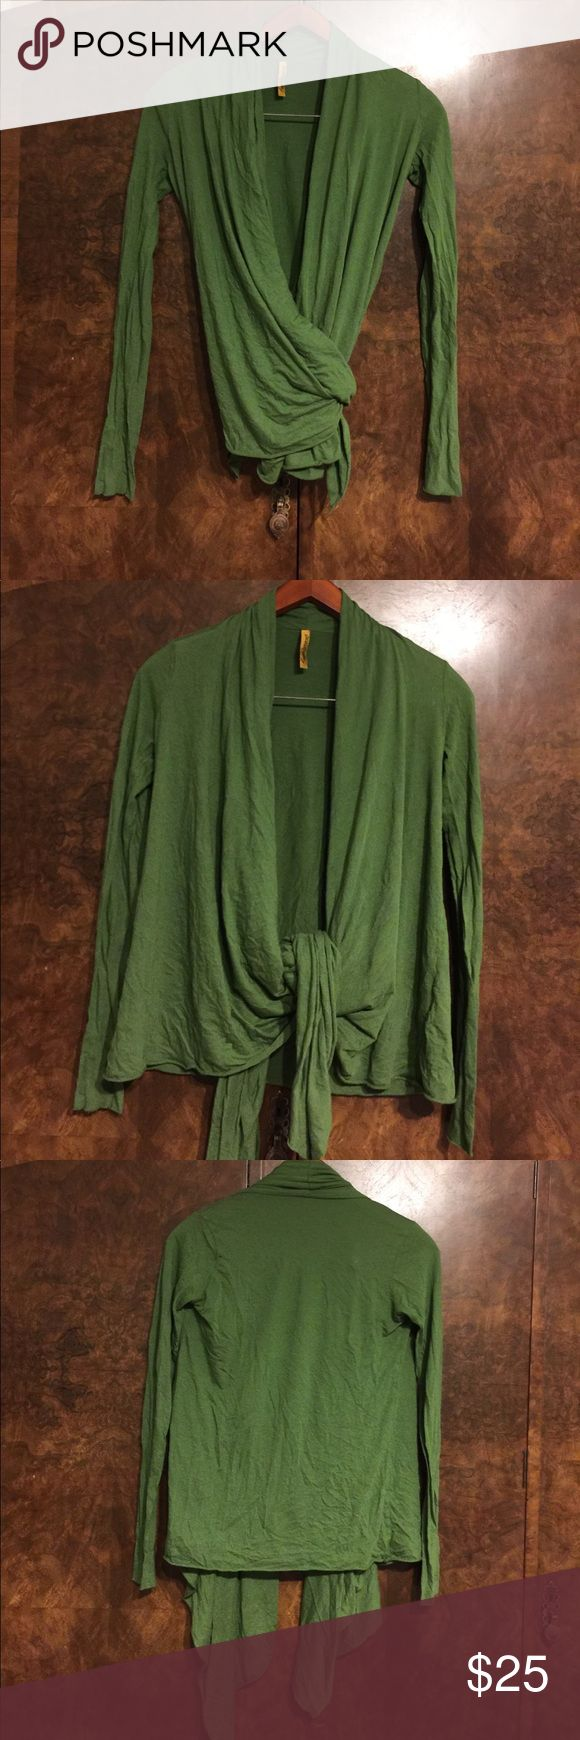 Rachel Pally wrap top xs green Green Rachel Pally wrap top. XS. See matching dress in other listing. Bundle and save! Rachel Pally Tops